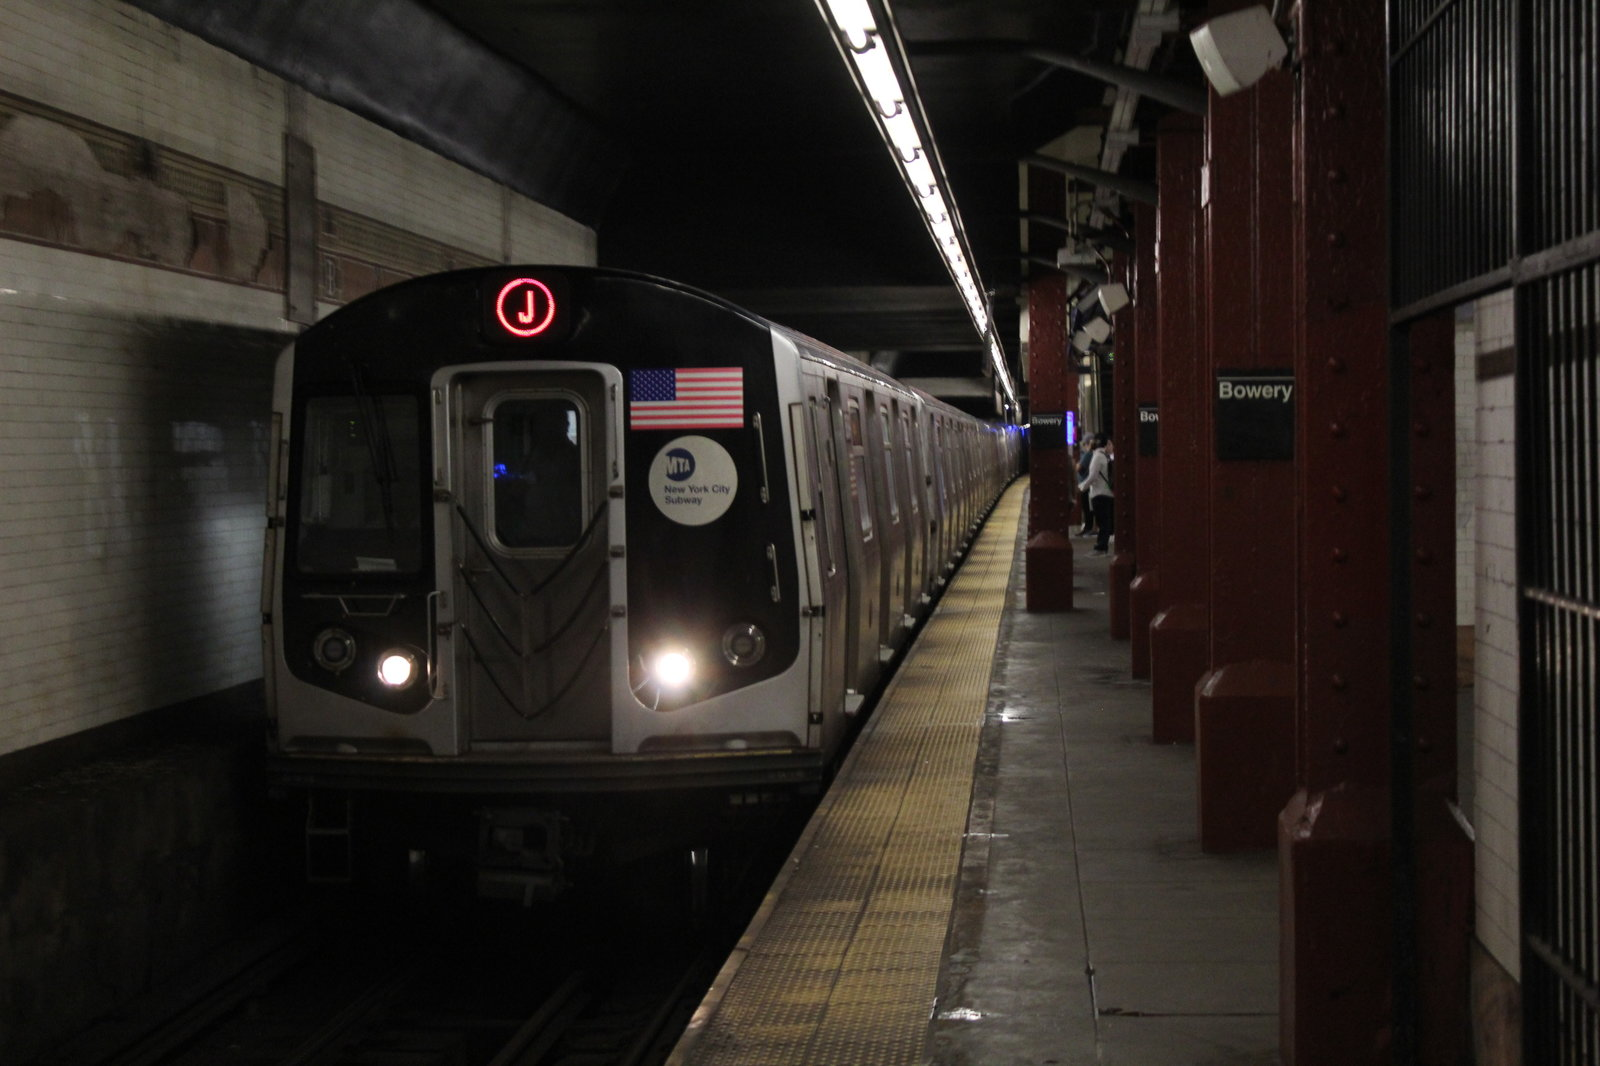 Broad Street-bound (J) train arriving at Bowery